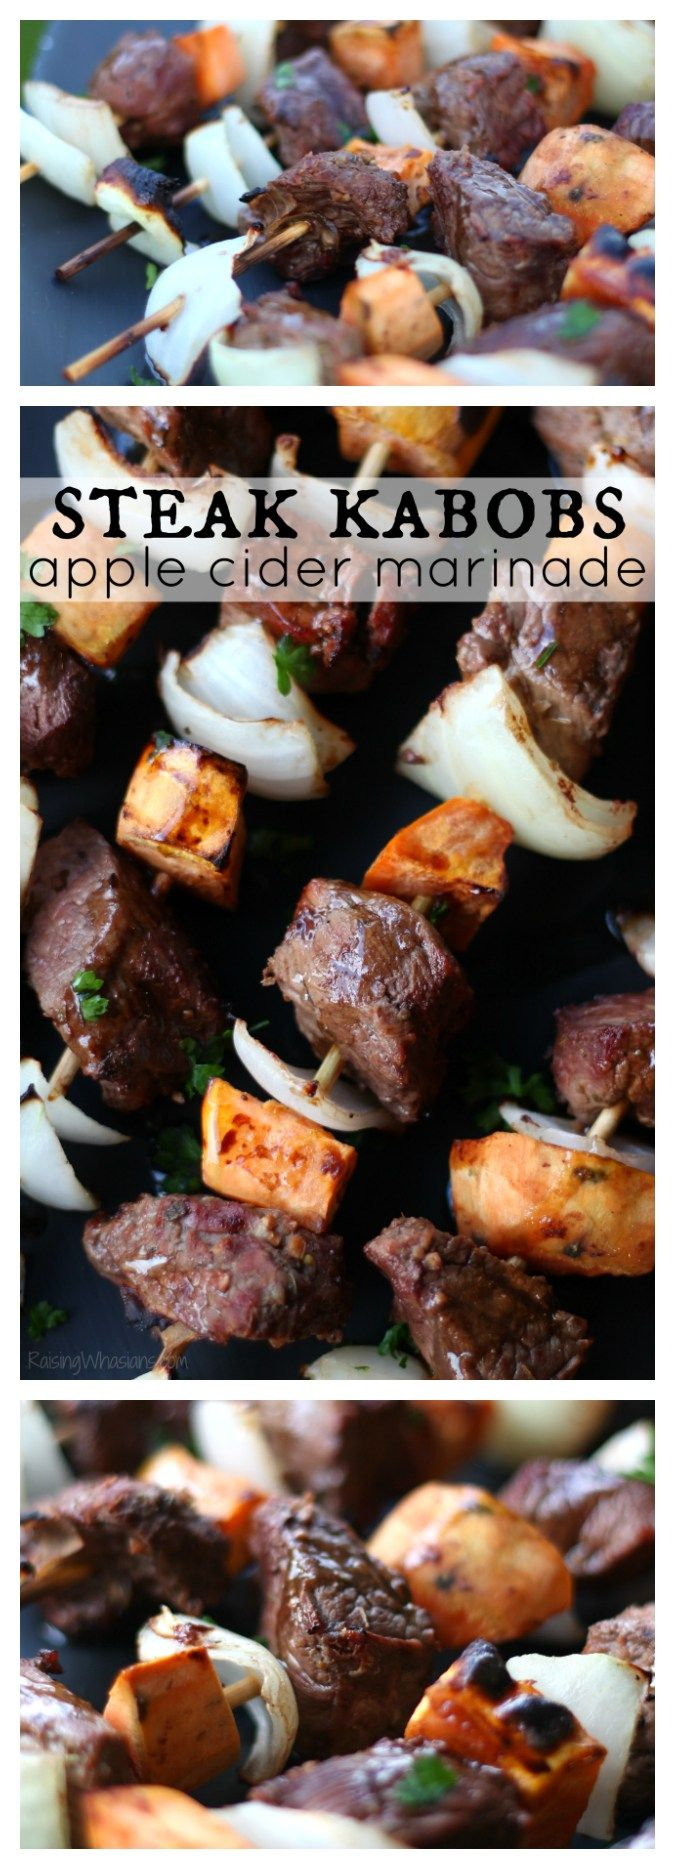 Fall Steak Kabobs with Apple Cider Marinade | Easy fall grilling recipe (AD)